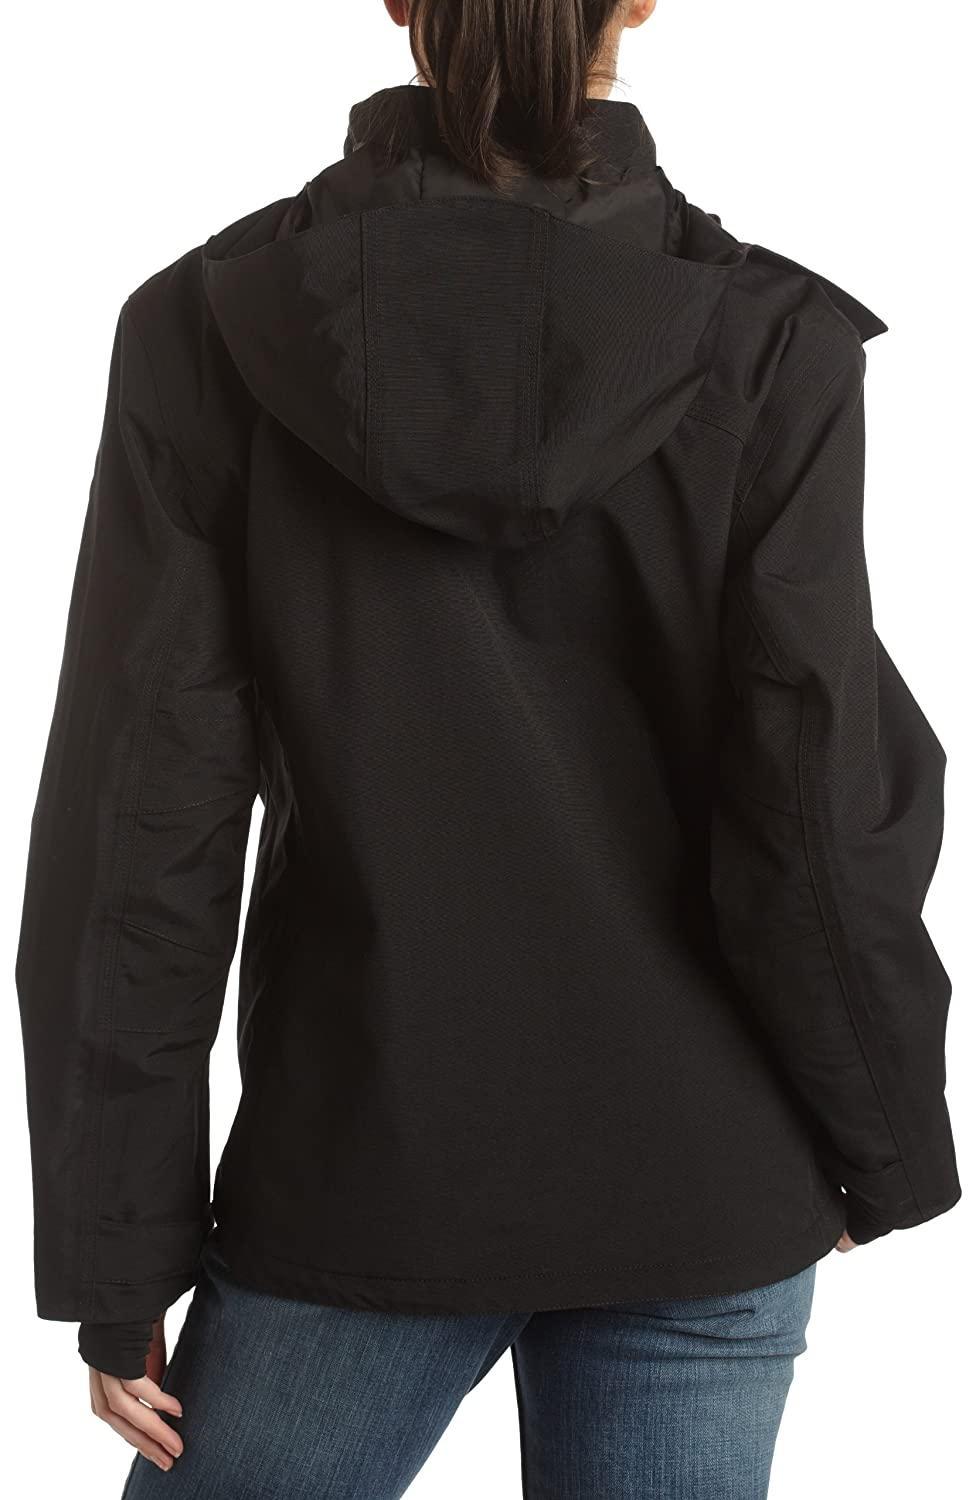 Carhartt wj002 Mujer Negro Impermeable y Transpirable ...